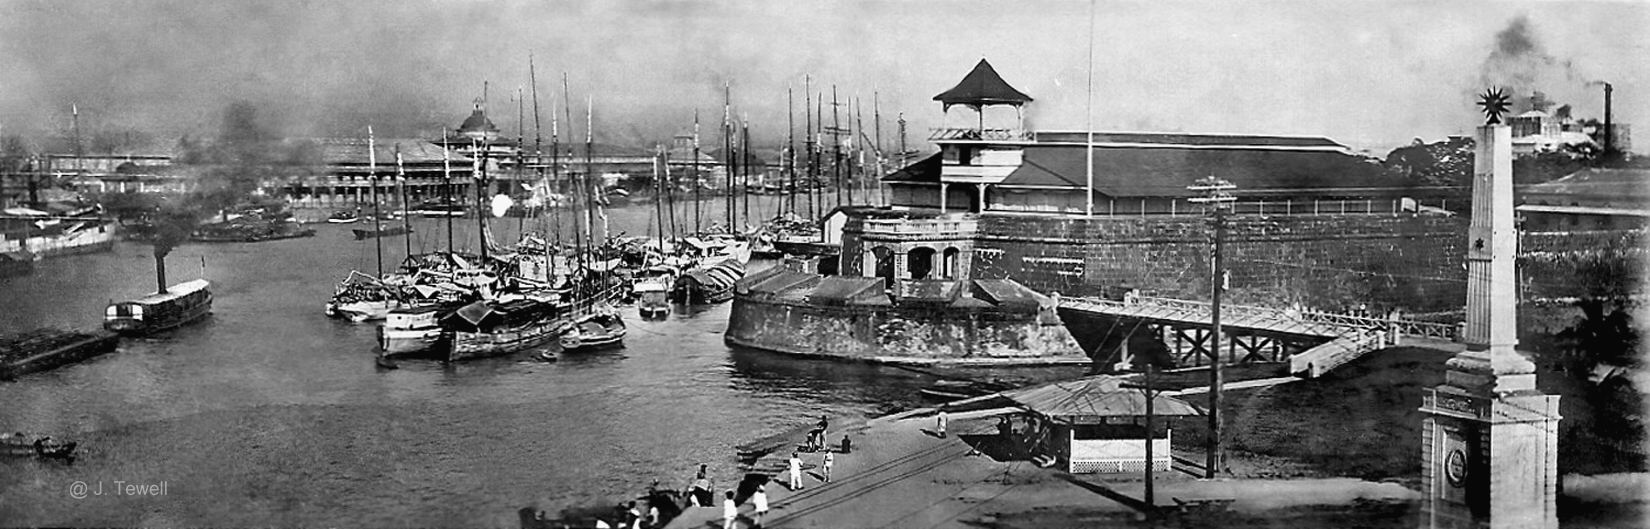 Pasig River, Fort Santiago, Anda Monument, Manila, Philippines, 1910